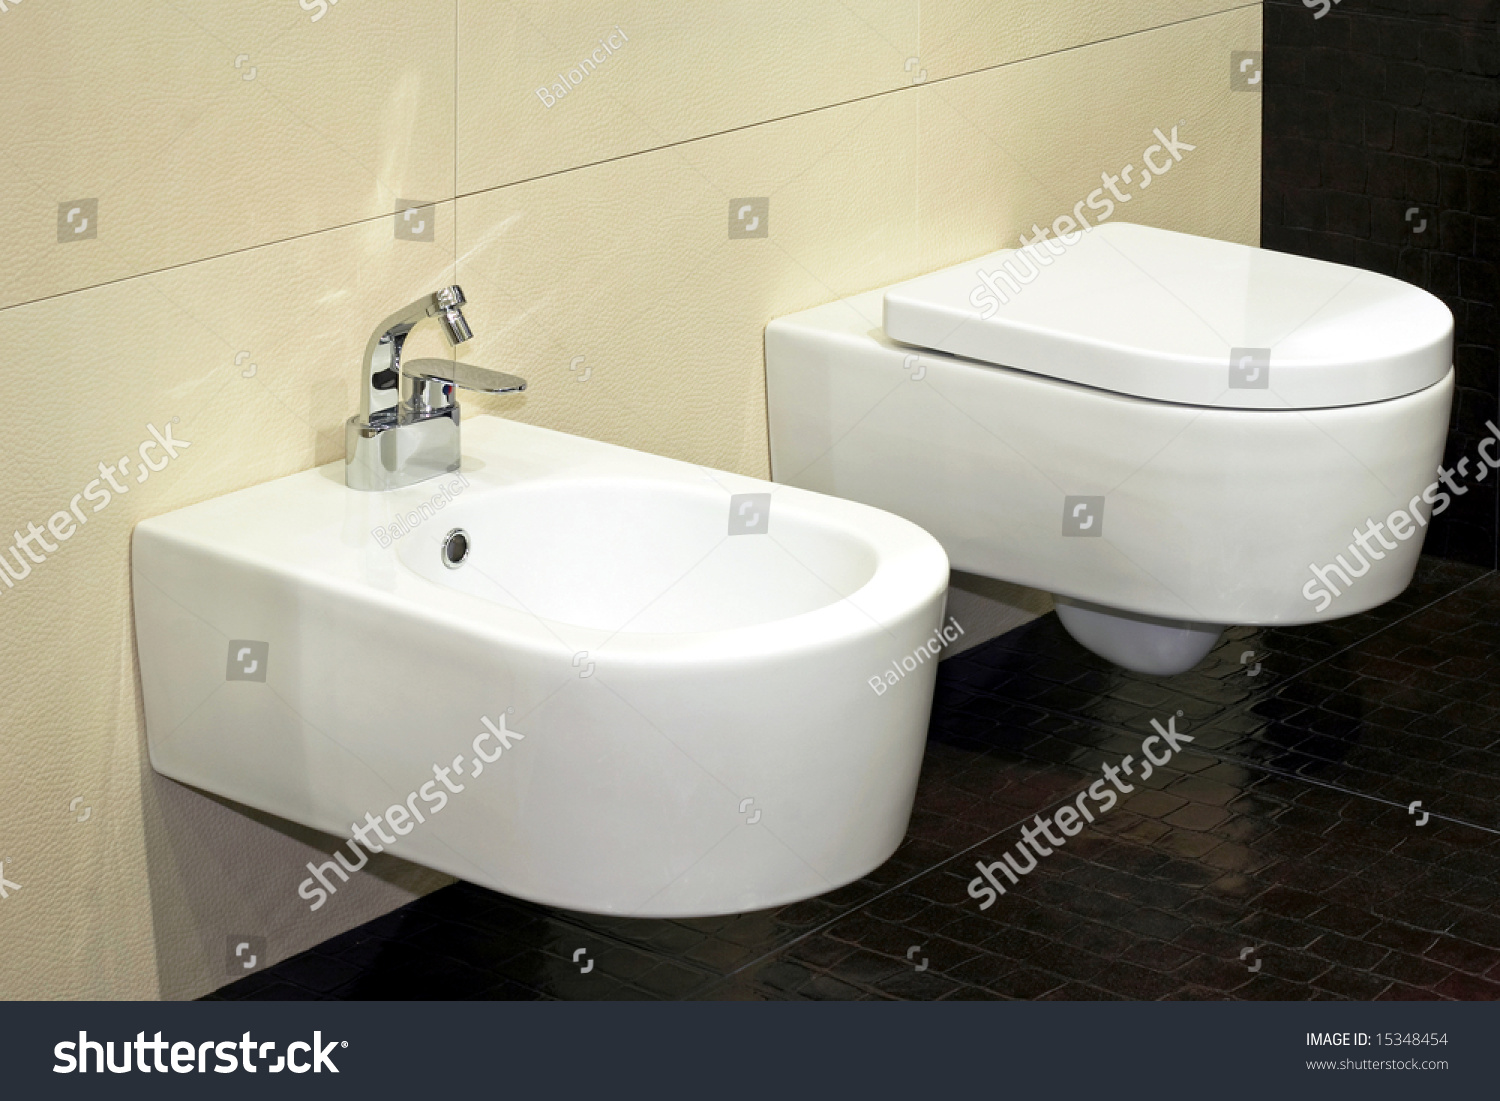 White bidet and toilet in brown lavatory | EZ Canvas